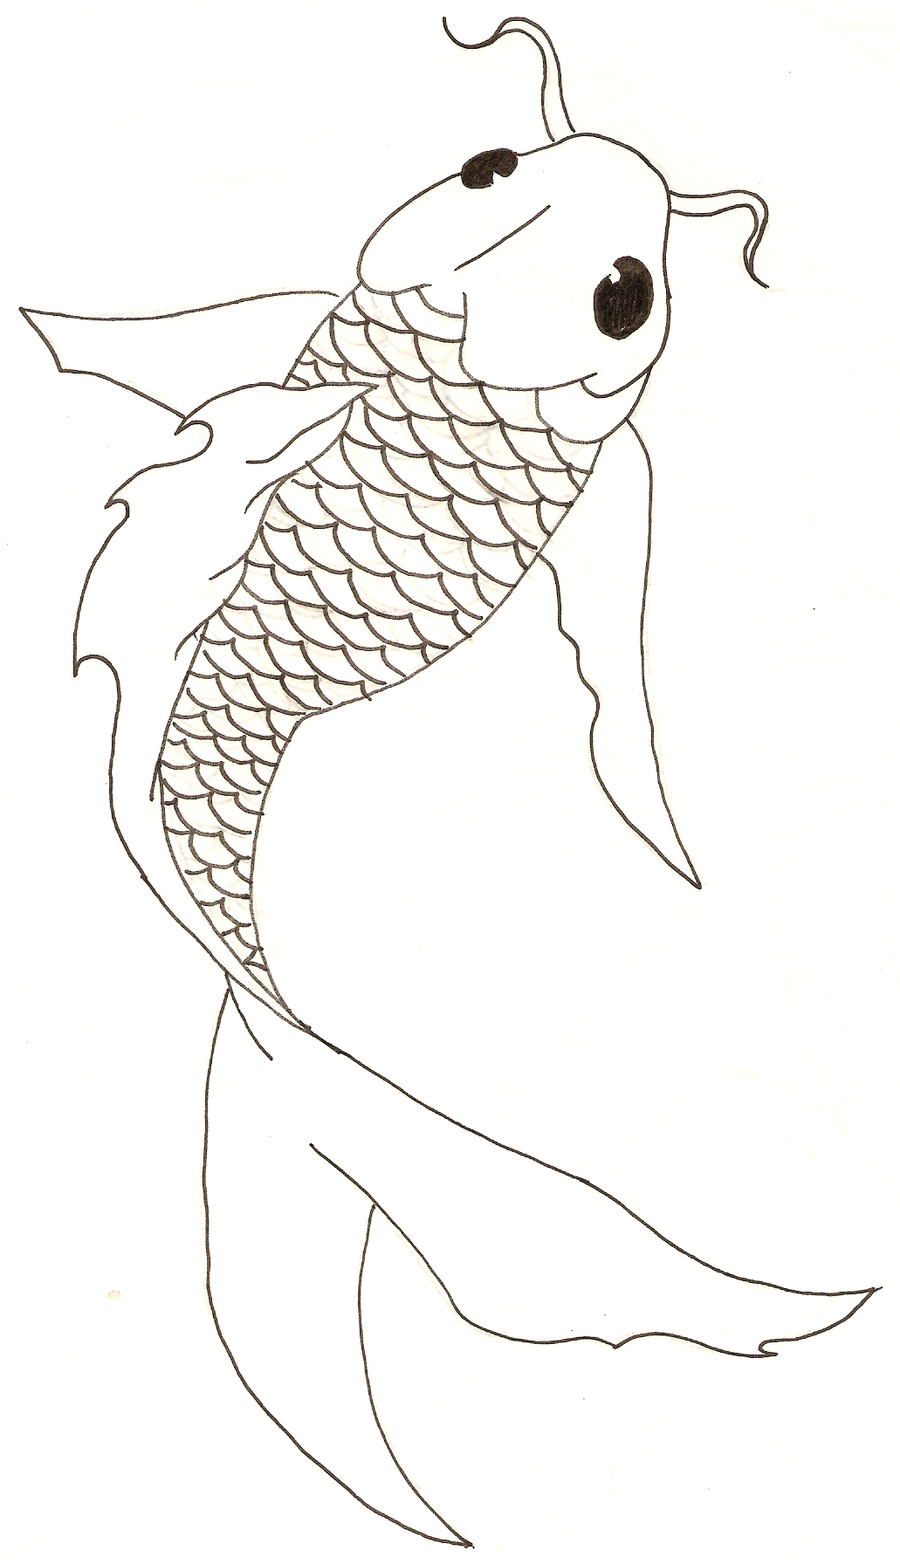 Uncategorized How To Draw A Koi Fish nice fish drawing could be adapted for stained glass koi free lineart